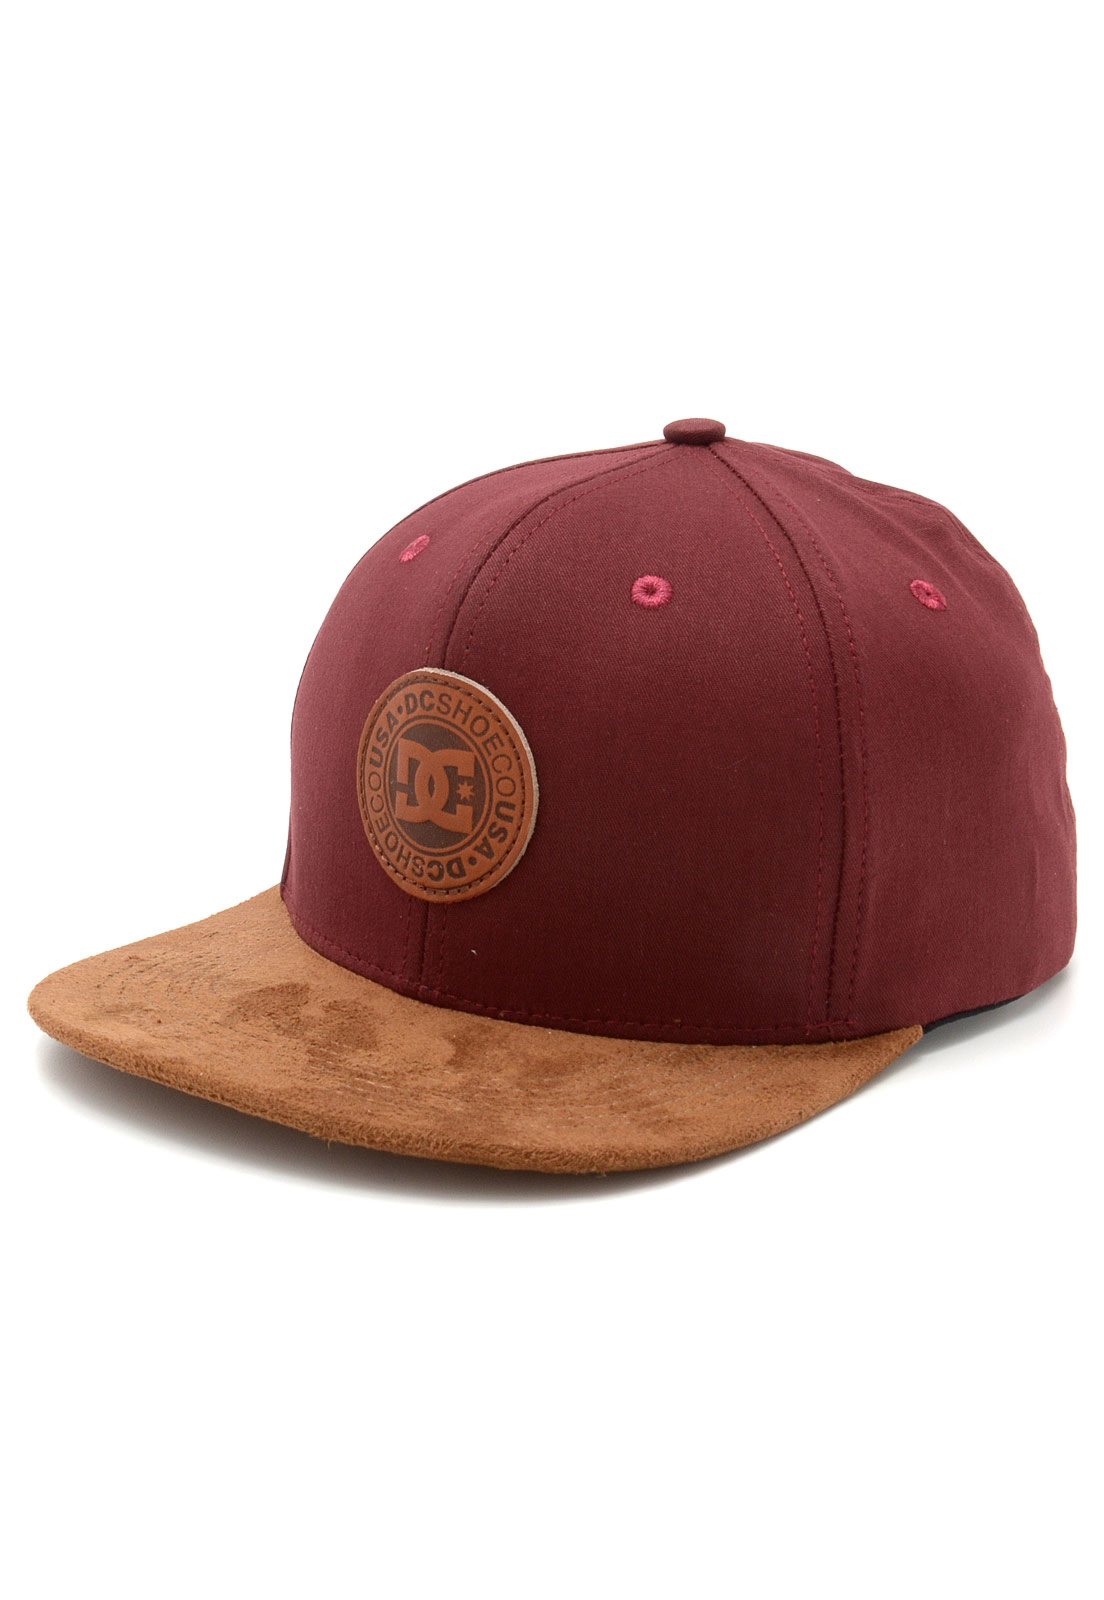 Boné DC Shoes Snappy Top Vinho Caramelo  46fec44ed56